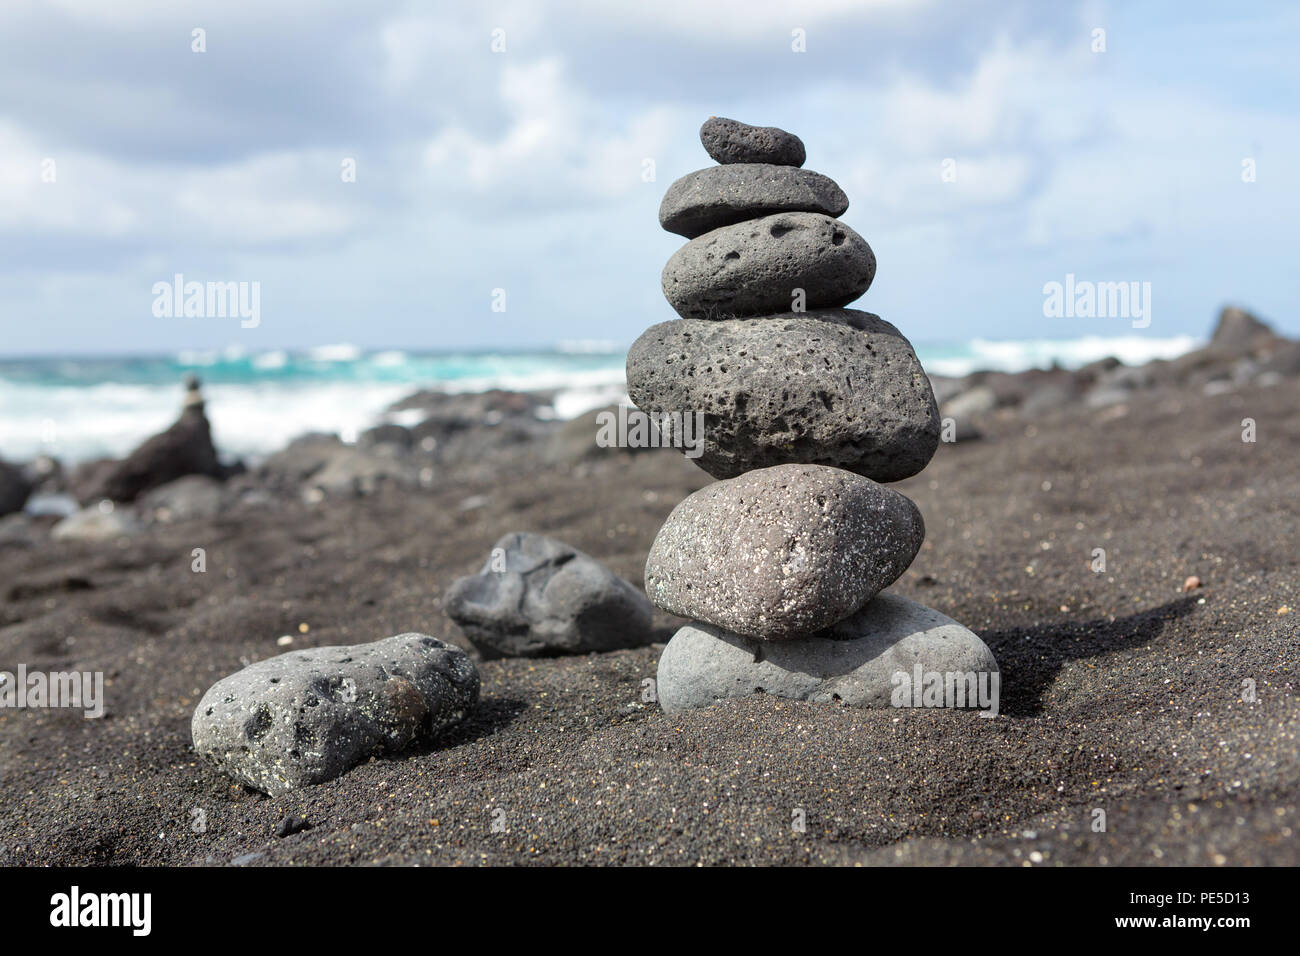 Balanced stacked stones or pebbles on a black sand beach. - Stock Image